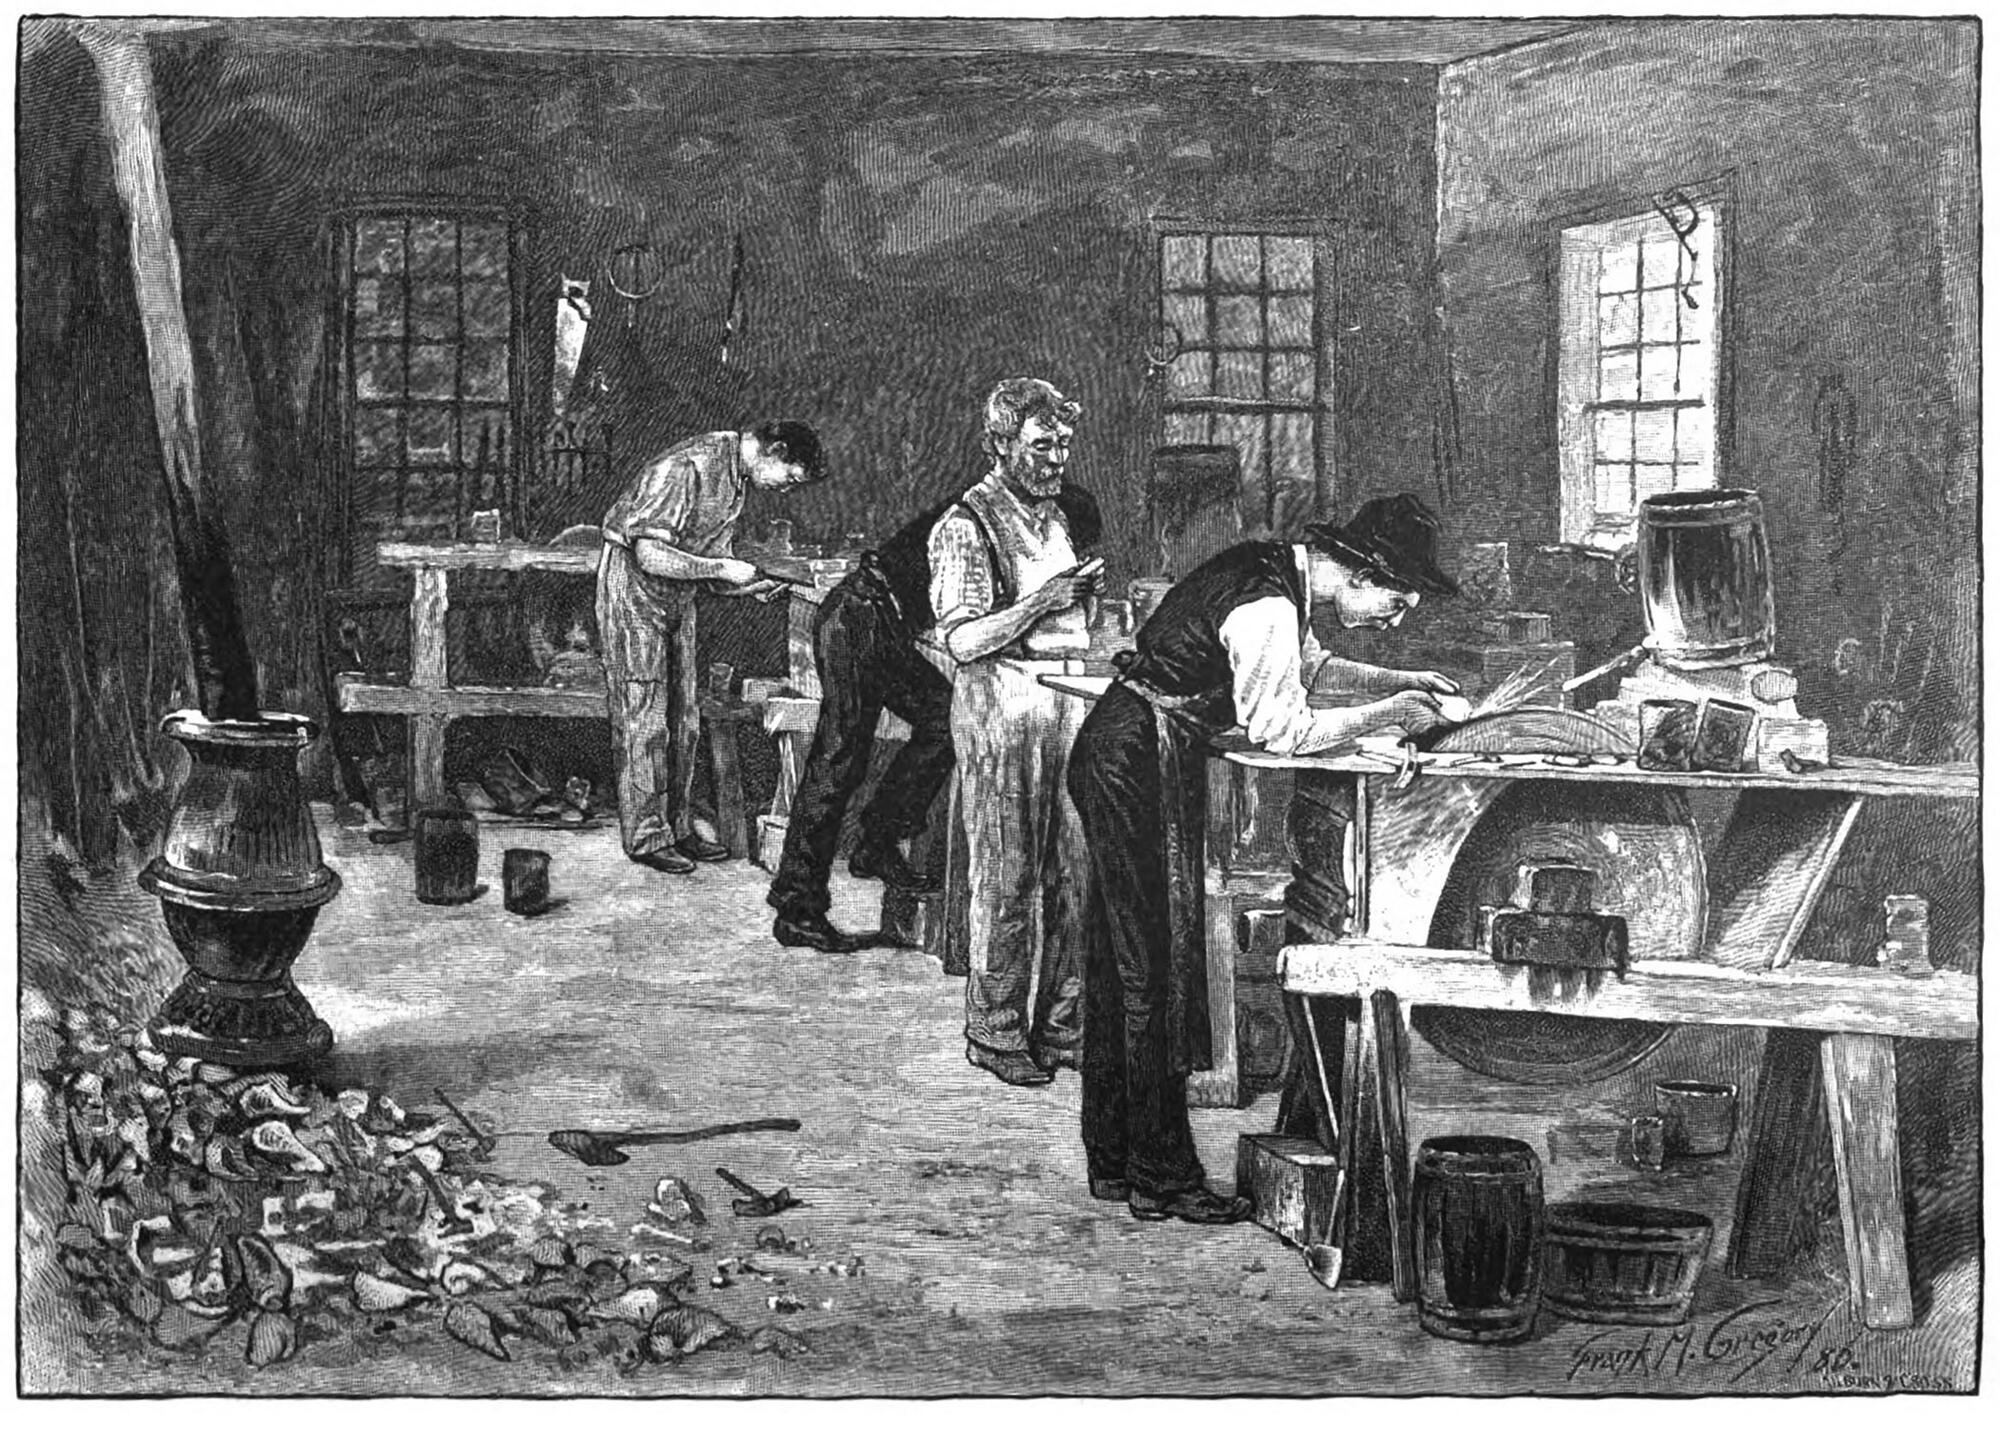 Campbell Factory Interior by Frank Gregory (1886)